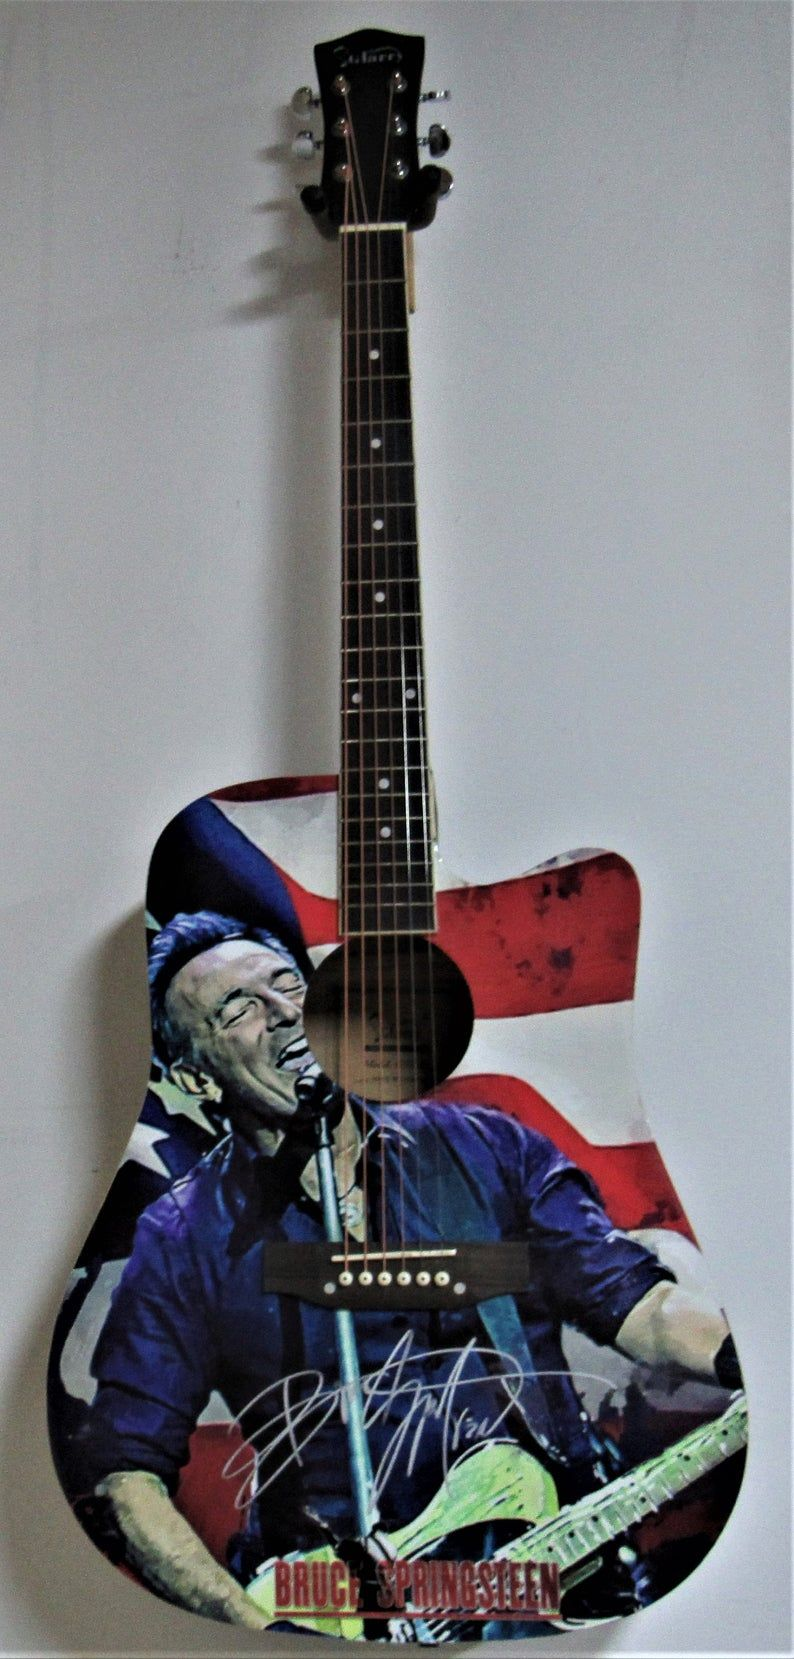 Bruce Springsteen Autographed Guitar in 2020 Bruce